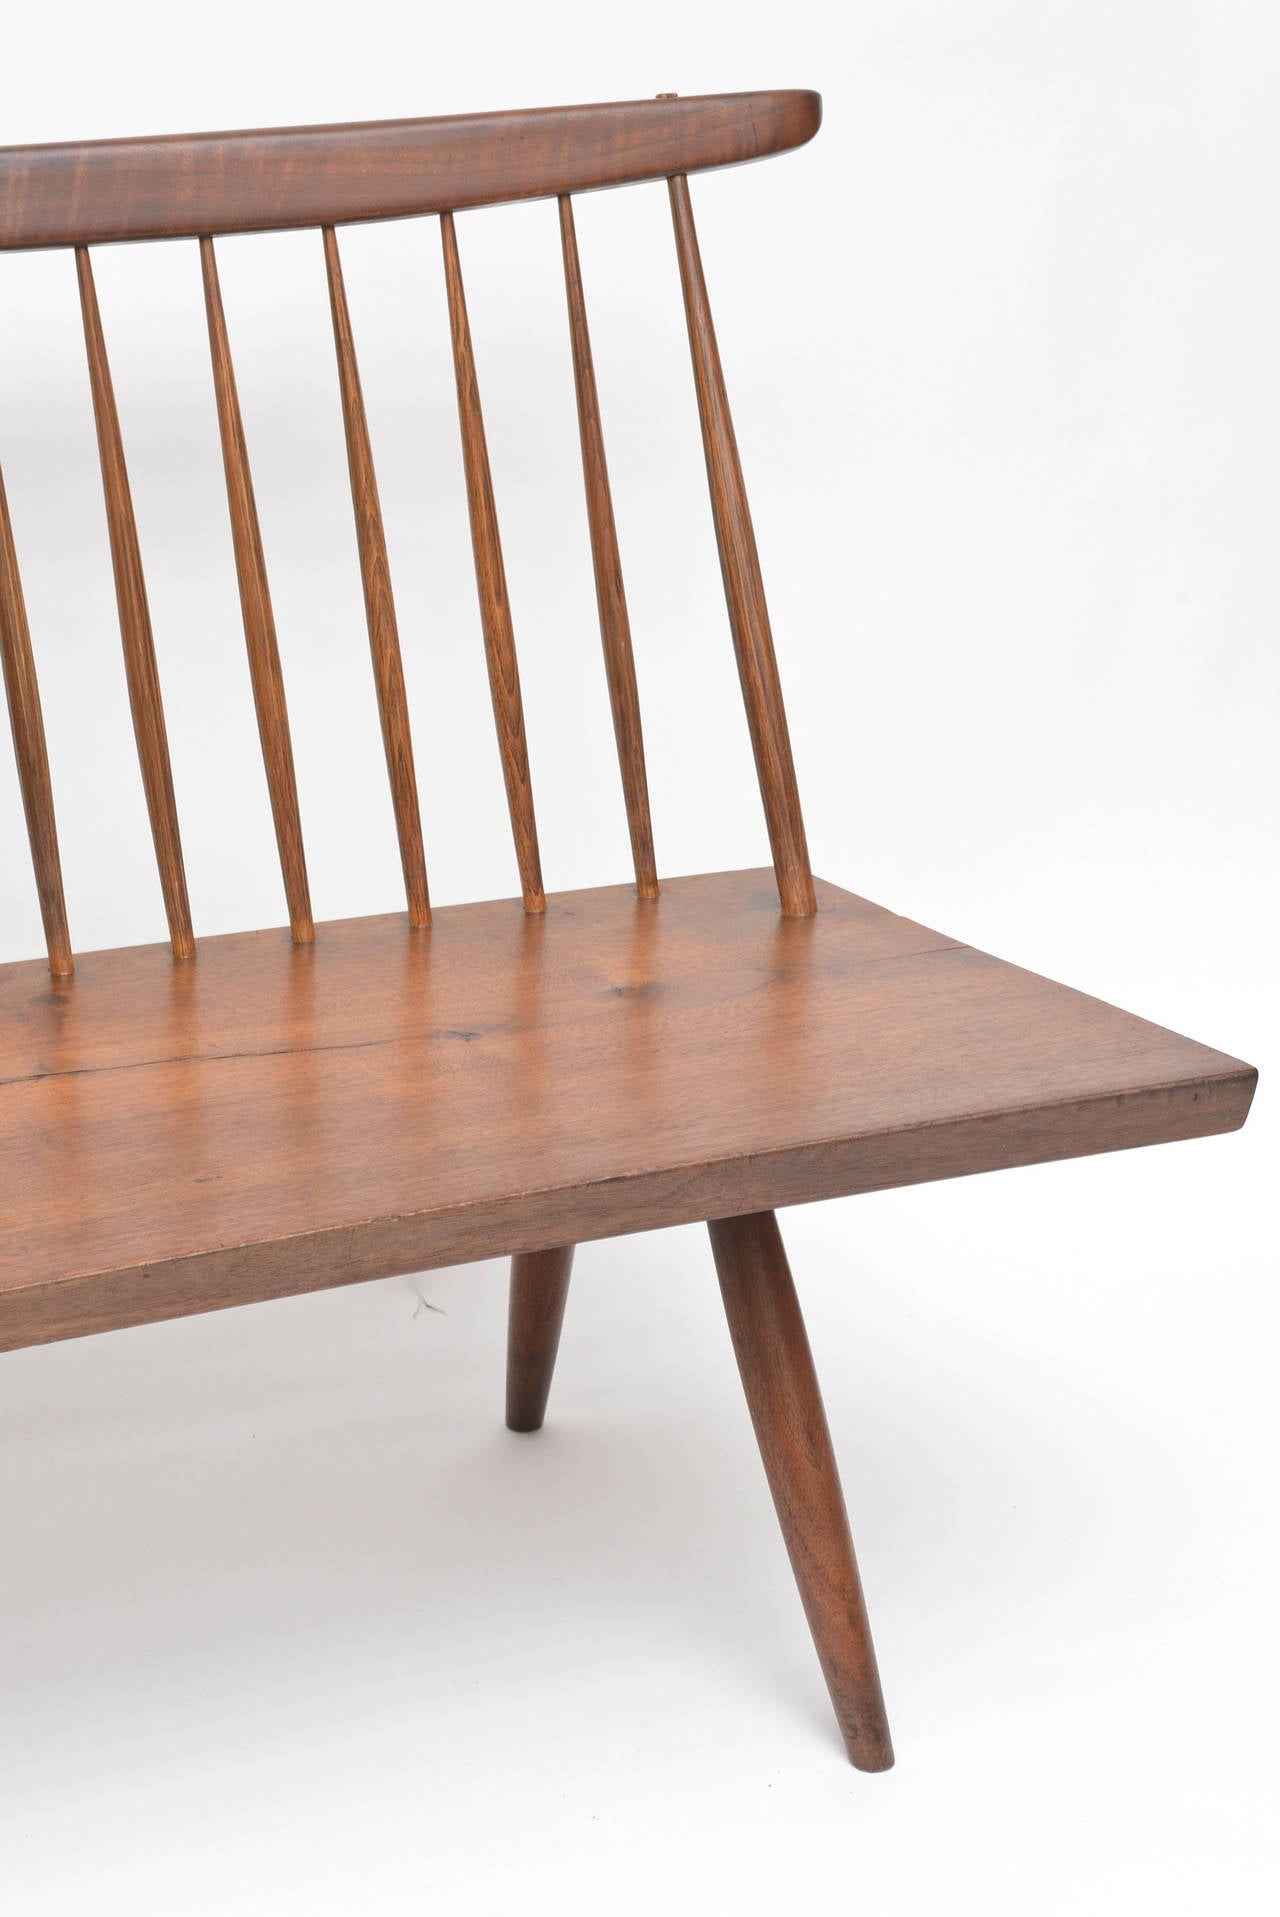 George Nakashima Walnut Bench In Good Condition For Sale In West Palm Beach, FL